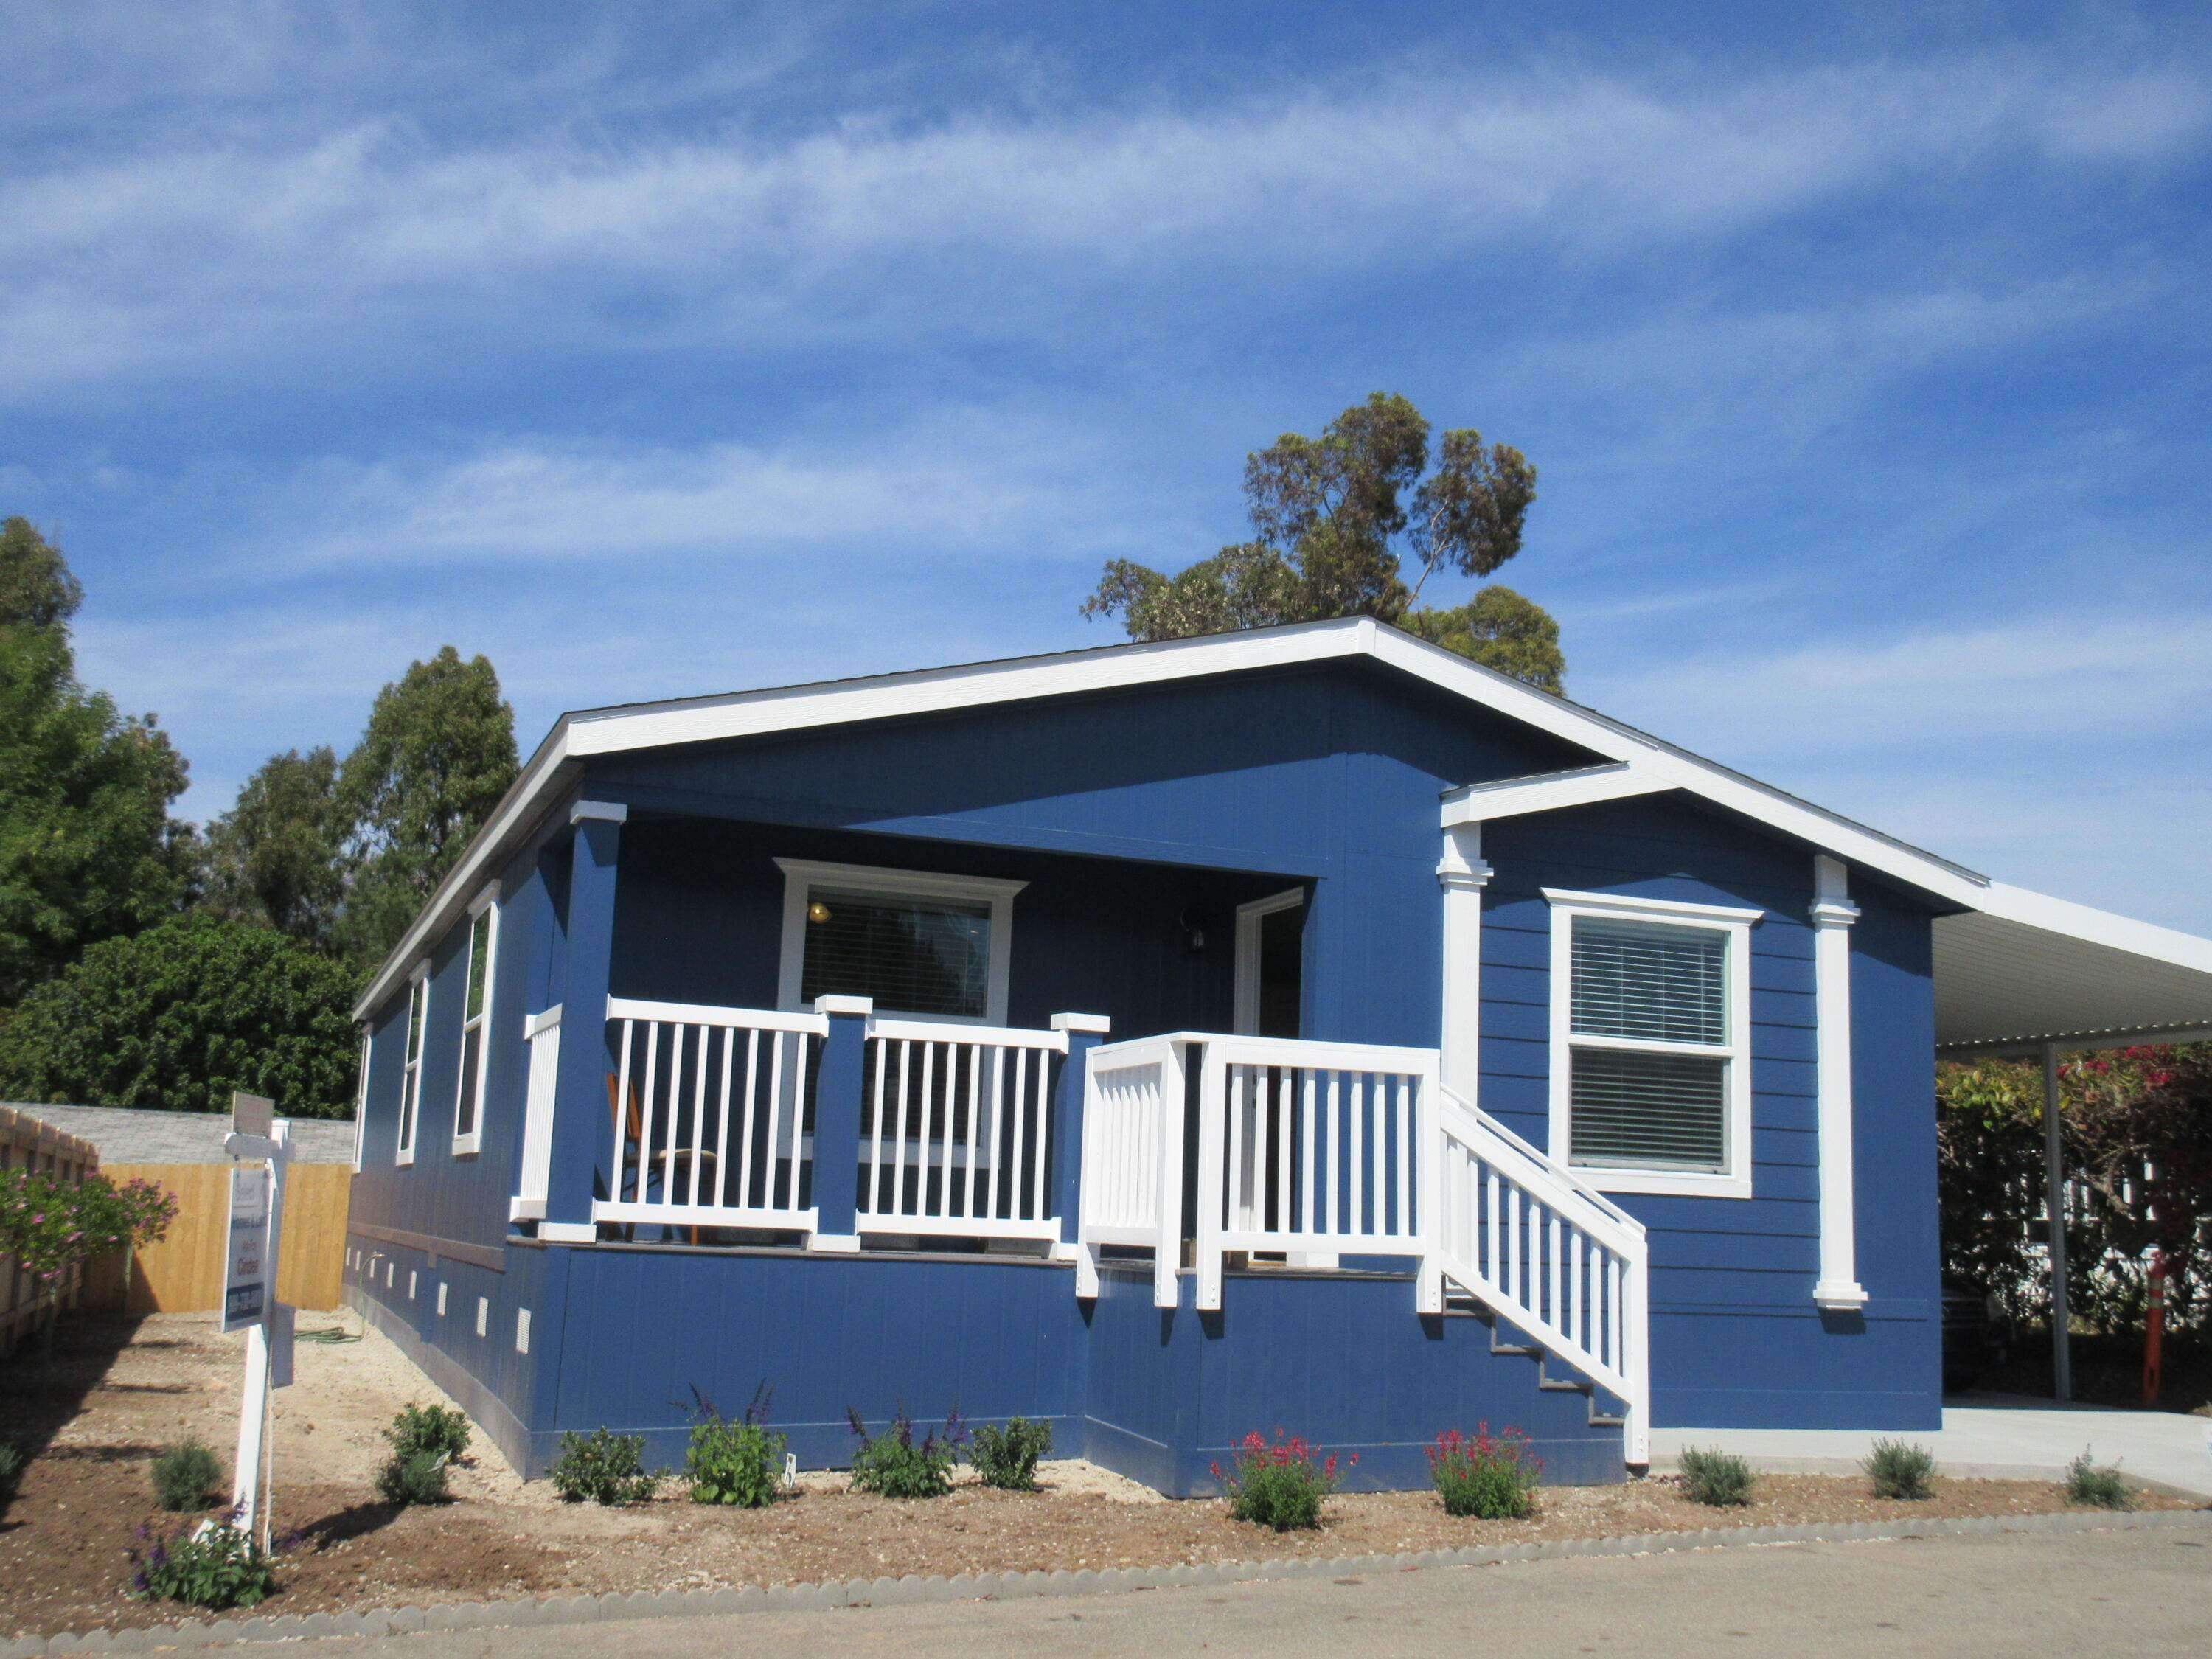 2. Manufactured Housing for Sale at 4025 Streetate Street Santa Barbara, California 93110 United States